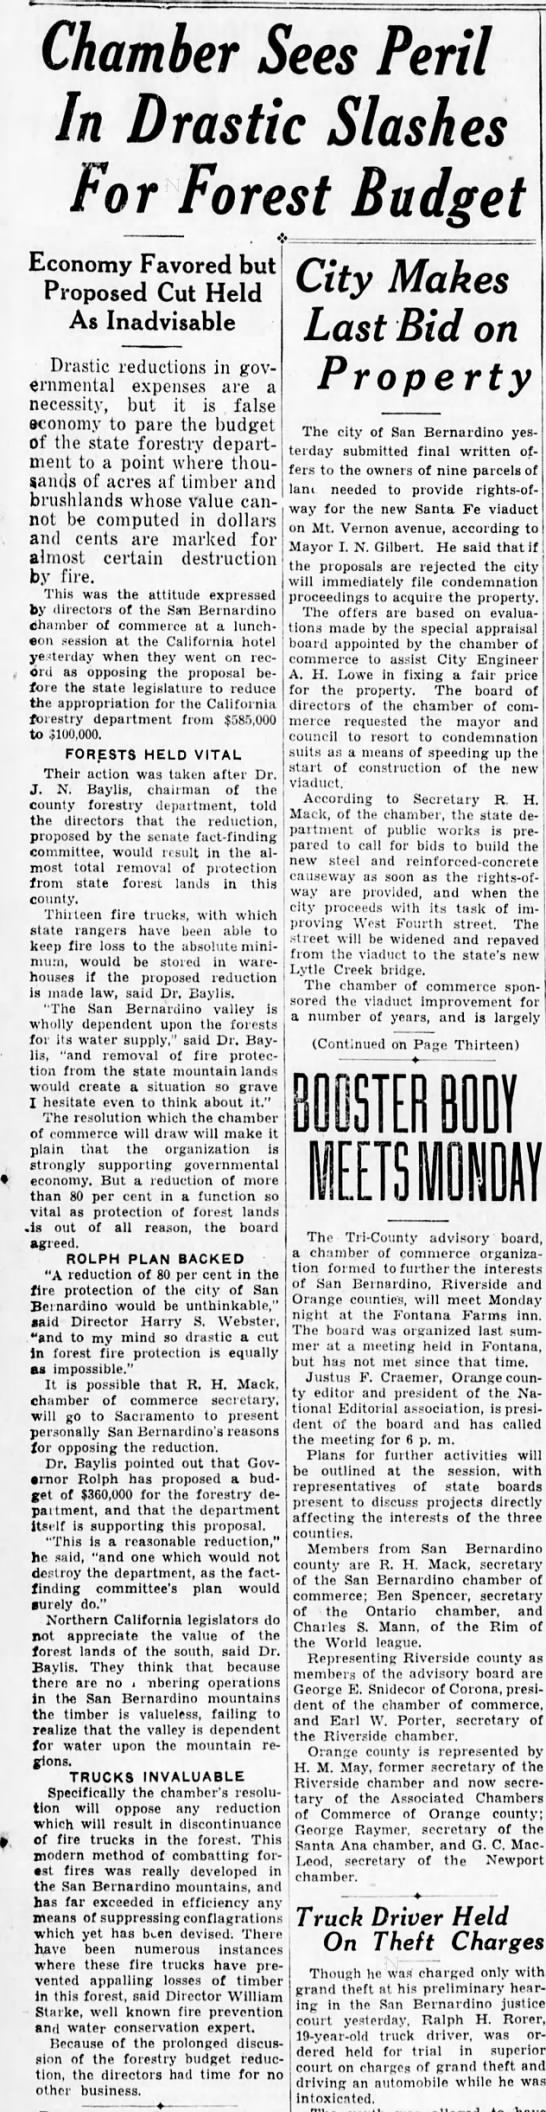 Chamber Sees Peril In Drastic Slashes For Forest Budget 3/25/1933